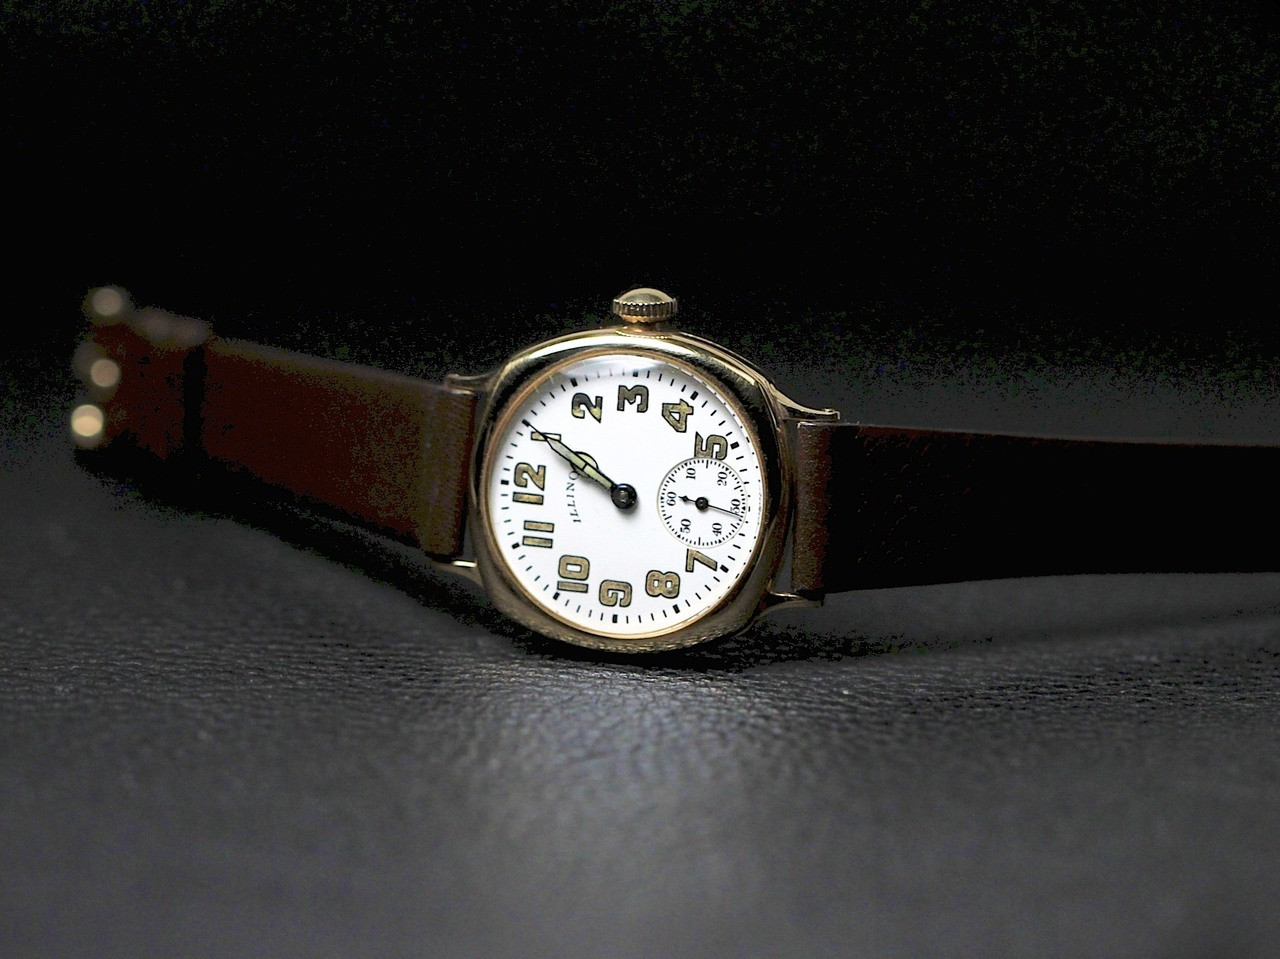 Vintage Illinois Watch - Vintage Military Dial 14K Yellow Gold - www.Legendoftime.com - Chicago Watch Center